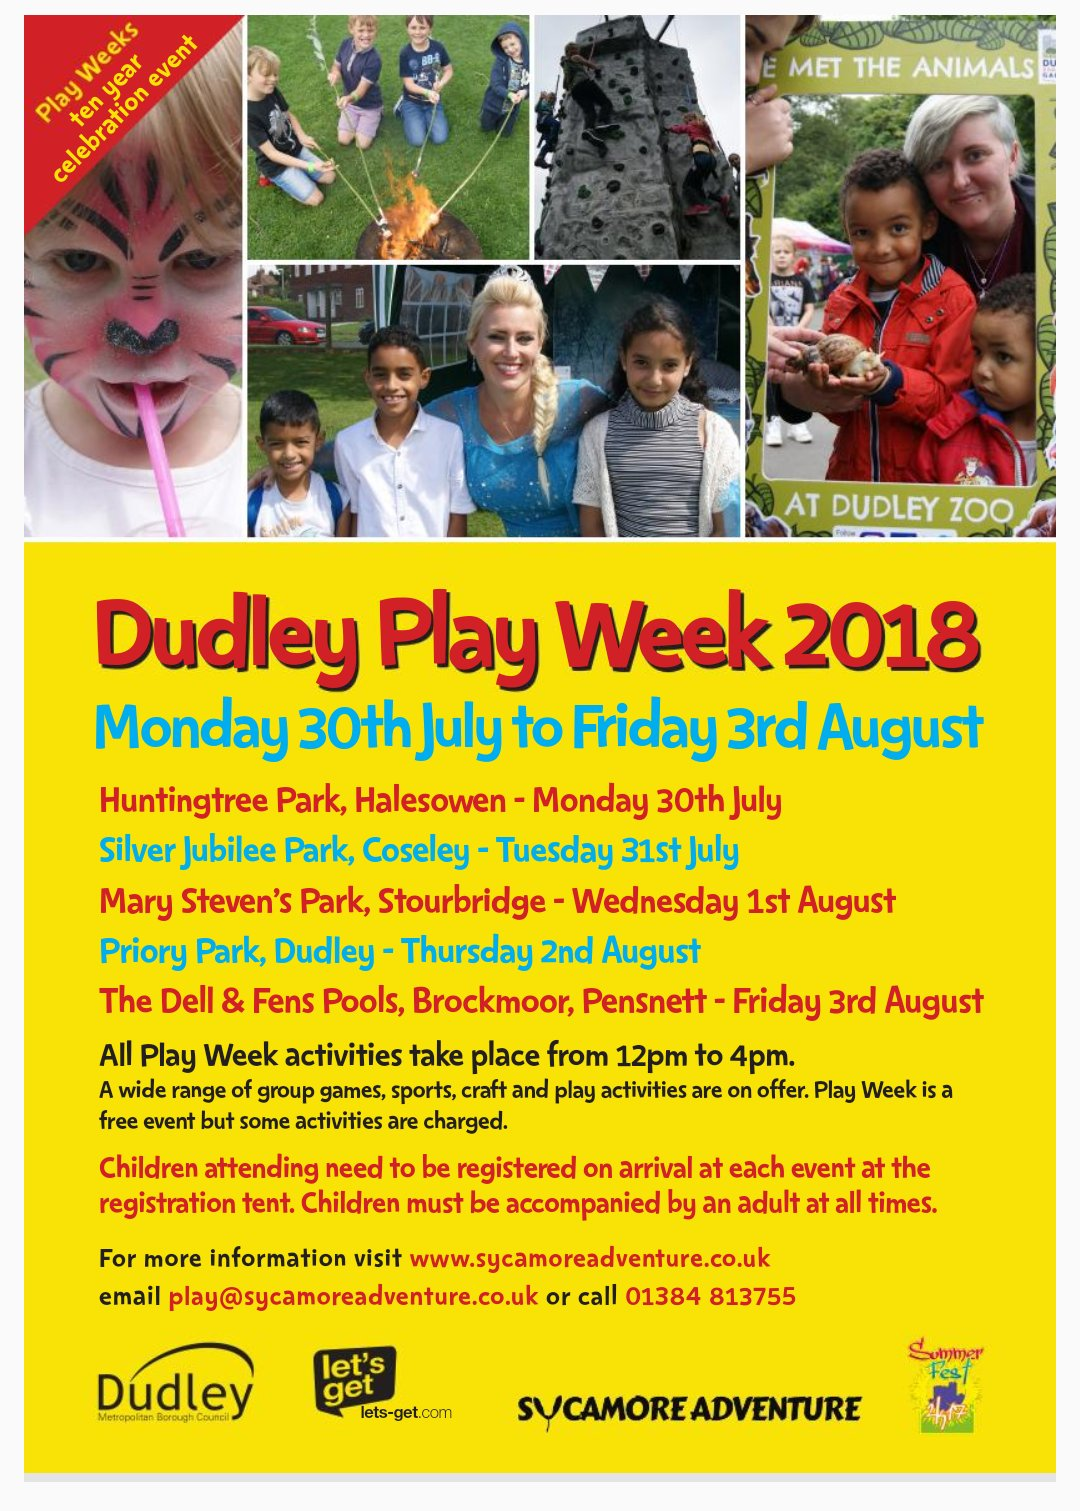 Dudley Play week 2018